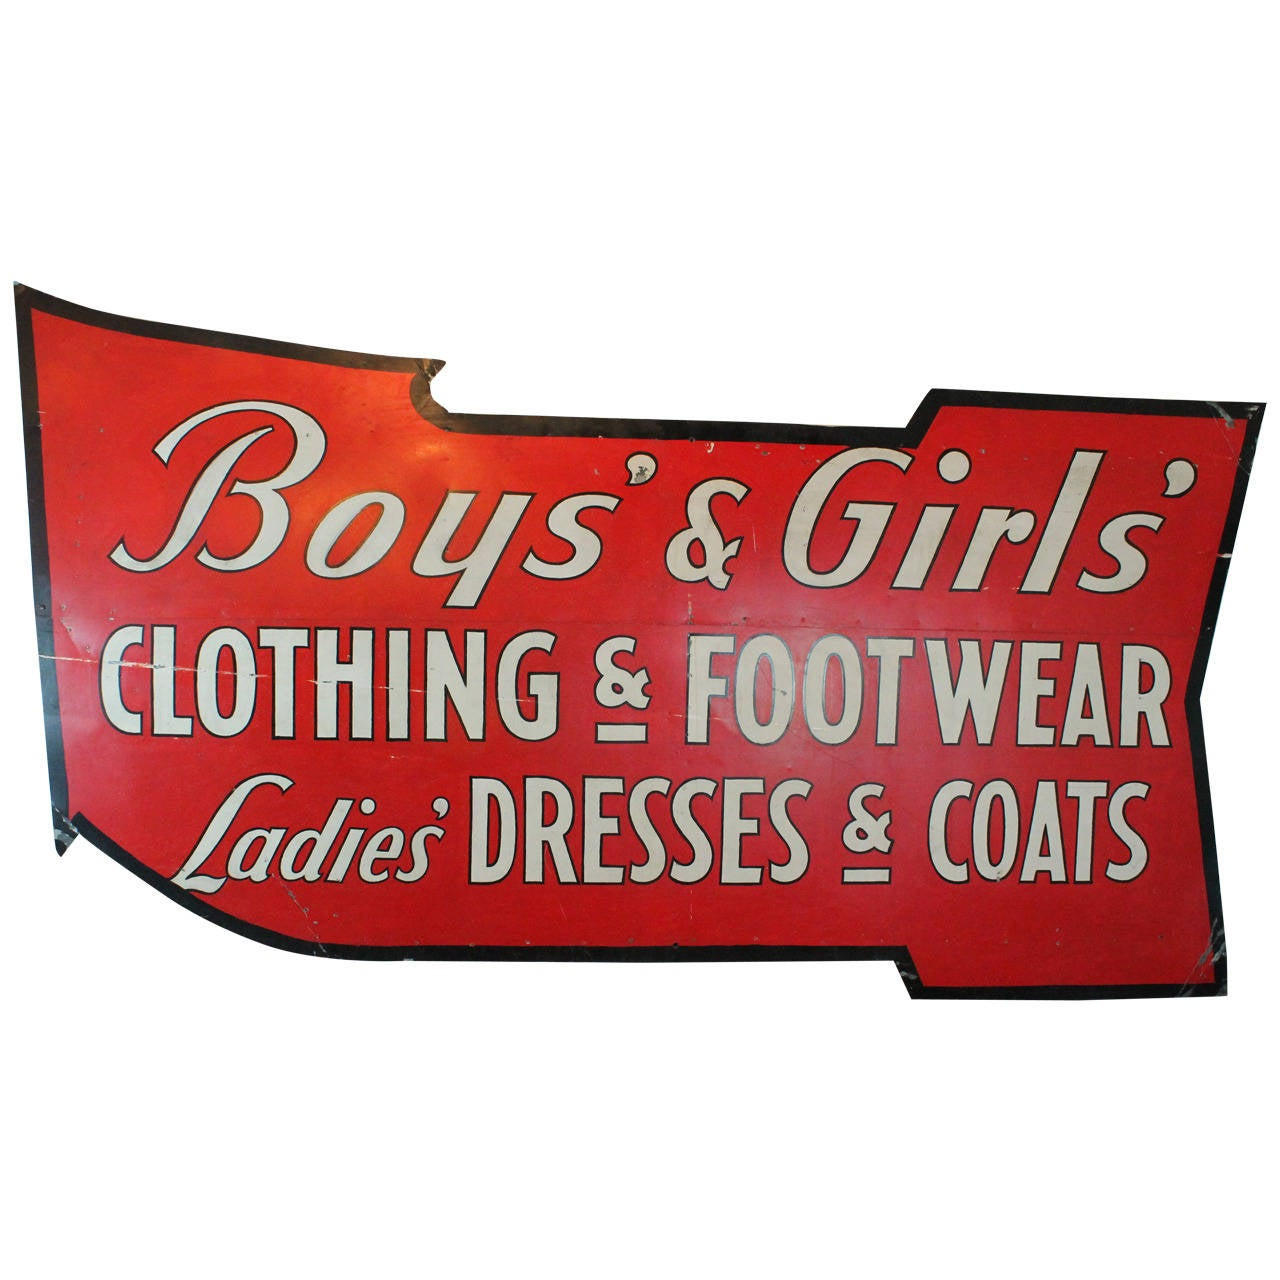 Clothing store signs